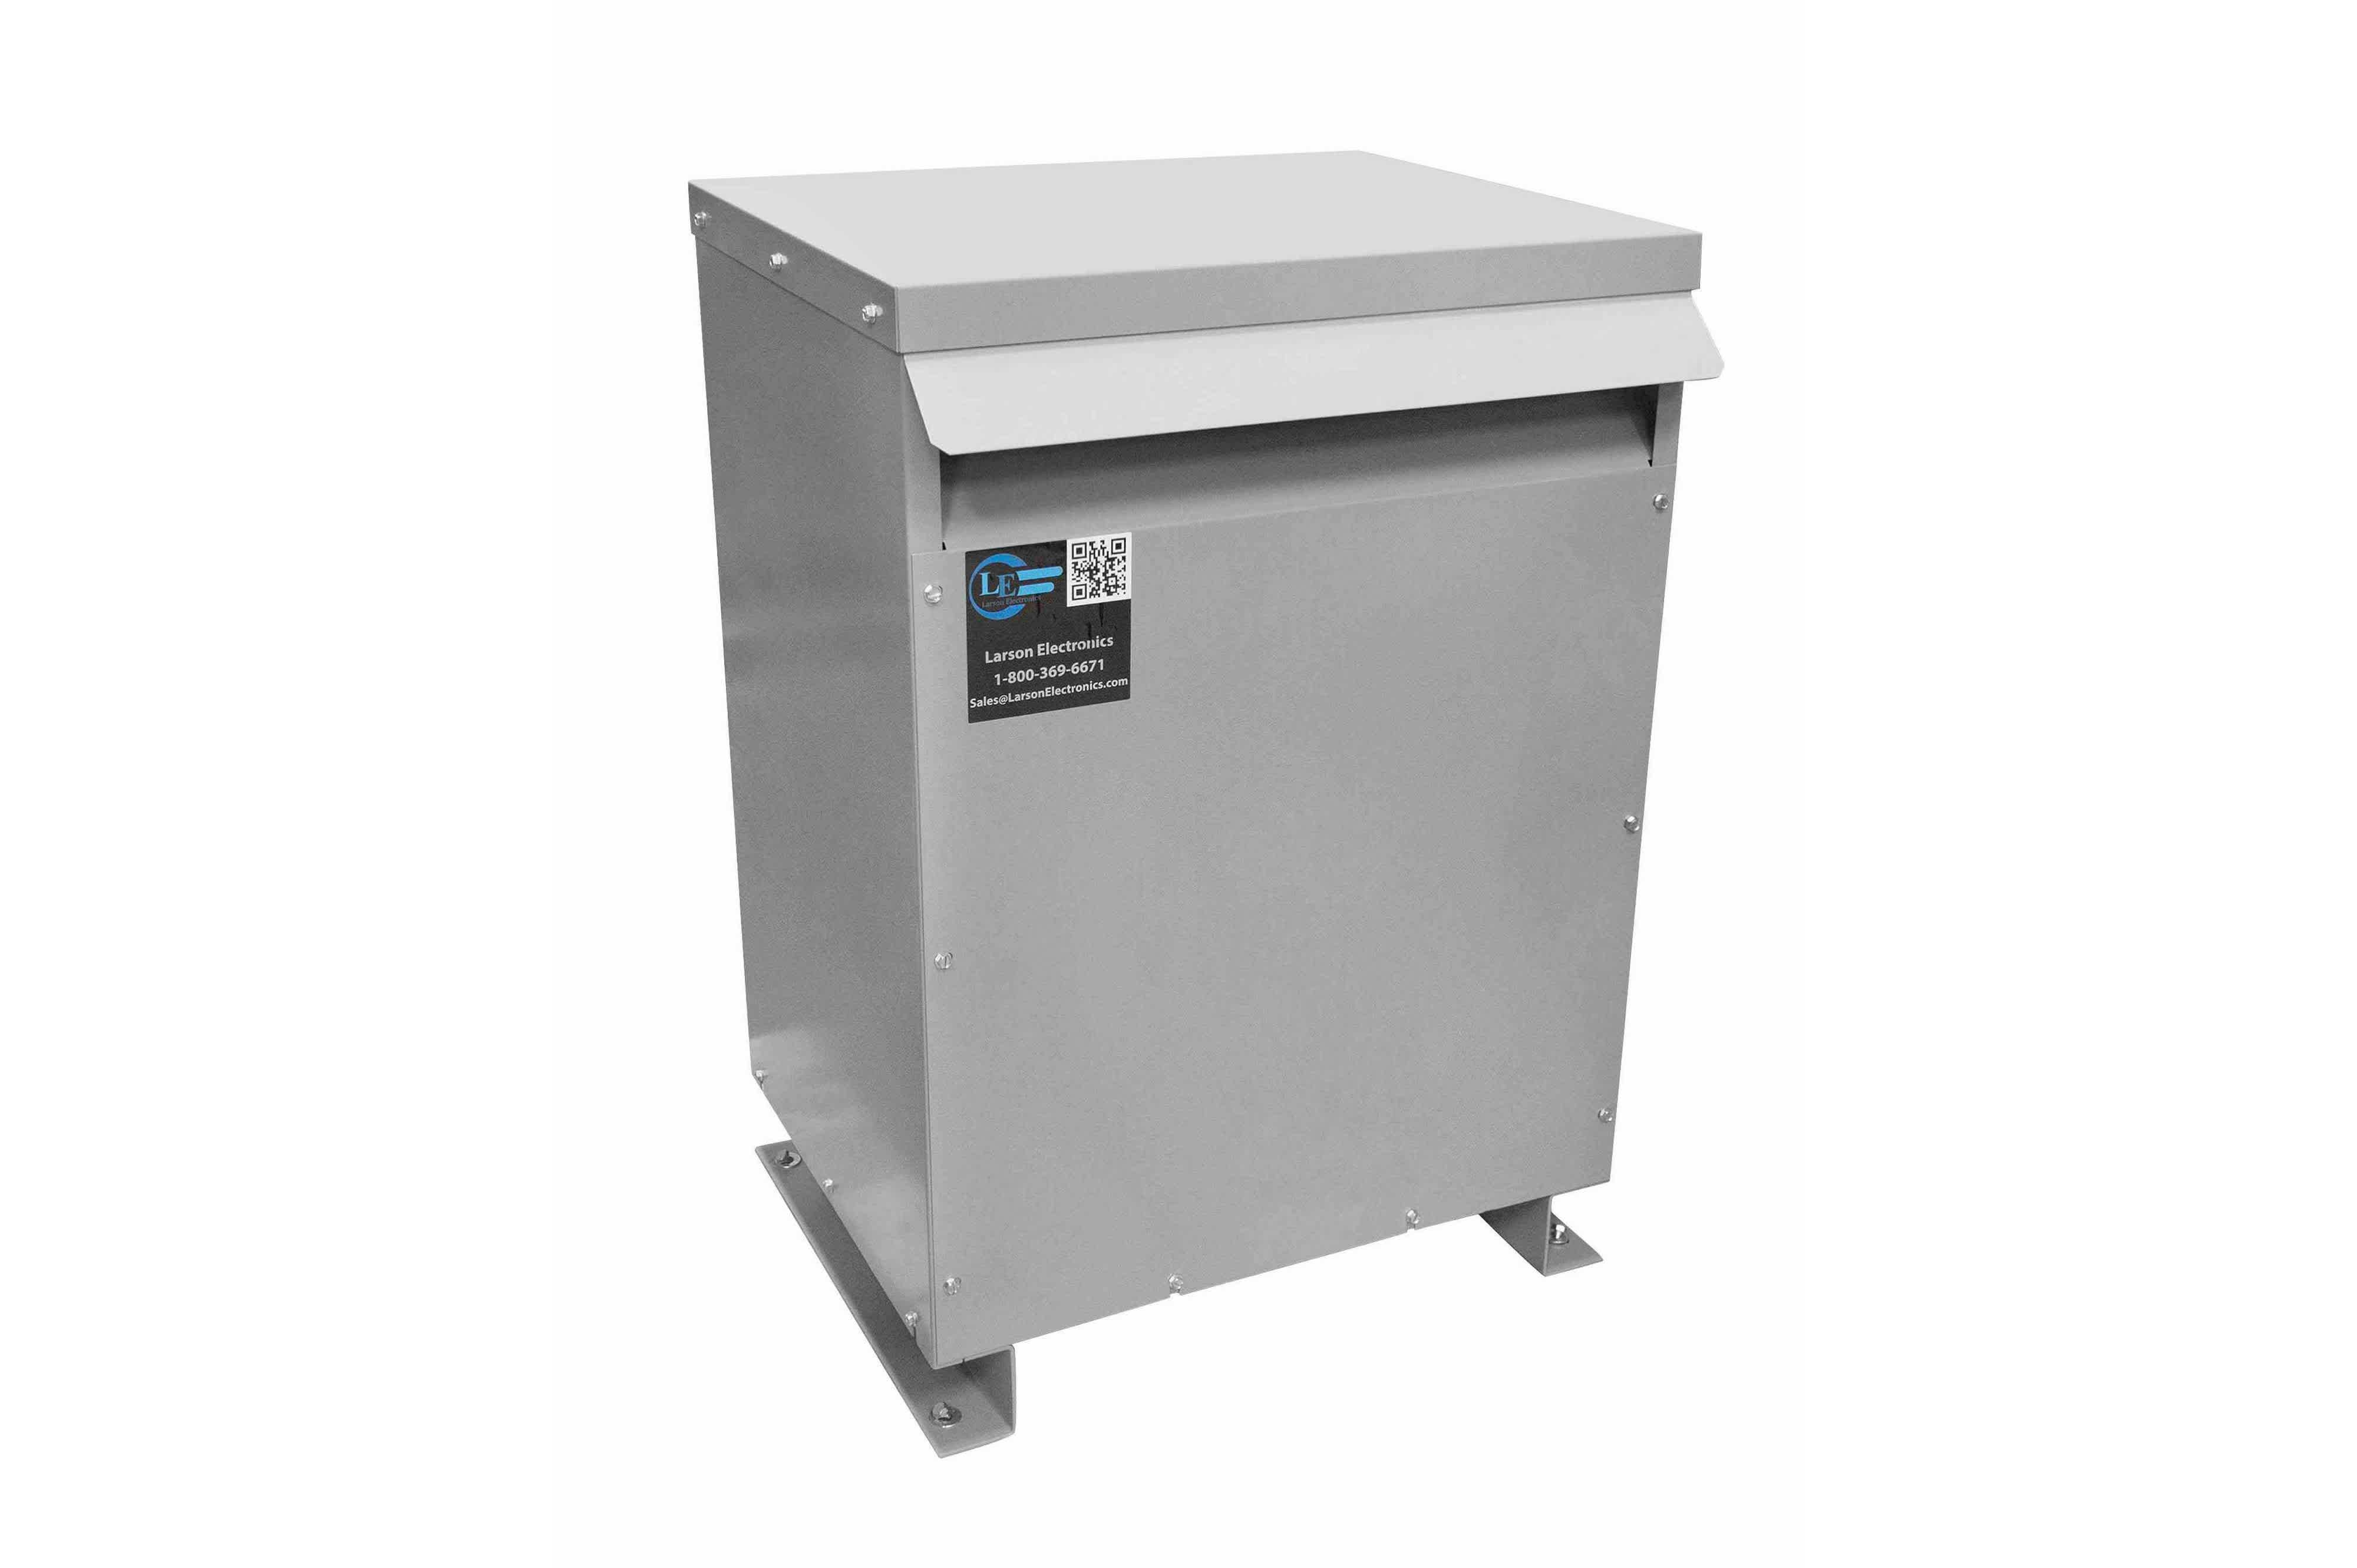 500 kVA 3PH Isolation Transformer, 575V Wye Primary, 380V Delta Secondary, N3R, Ventilated, 60 Hz